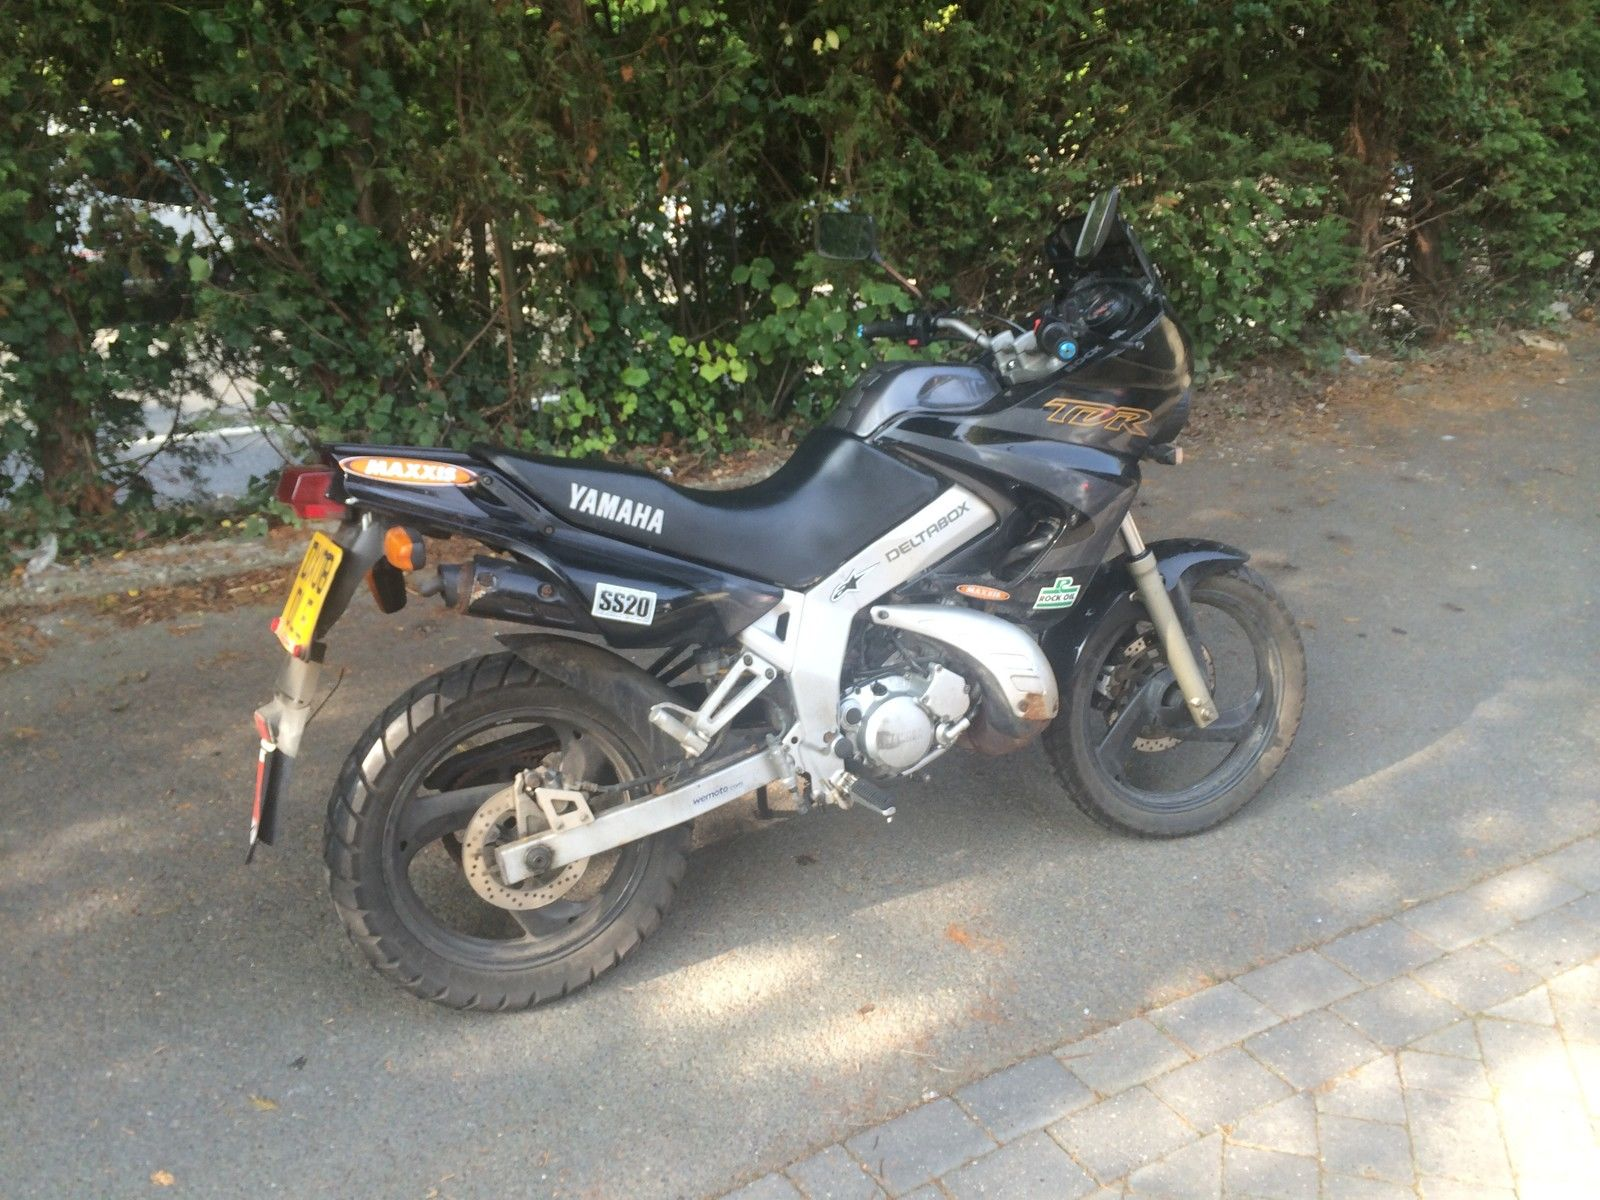 yamaha tdr 125 tdr125 learner legal project spares or repair rare two stroke. Black Bedroom Furniture Sets. Home Design Ideas